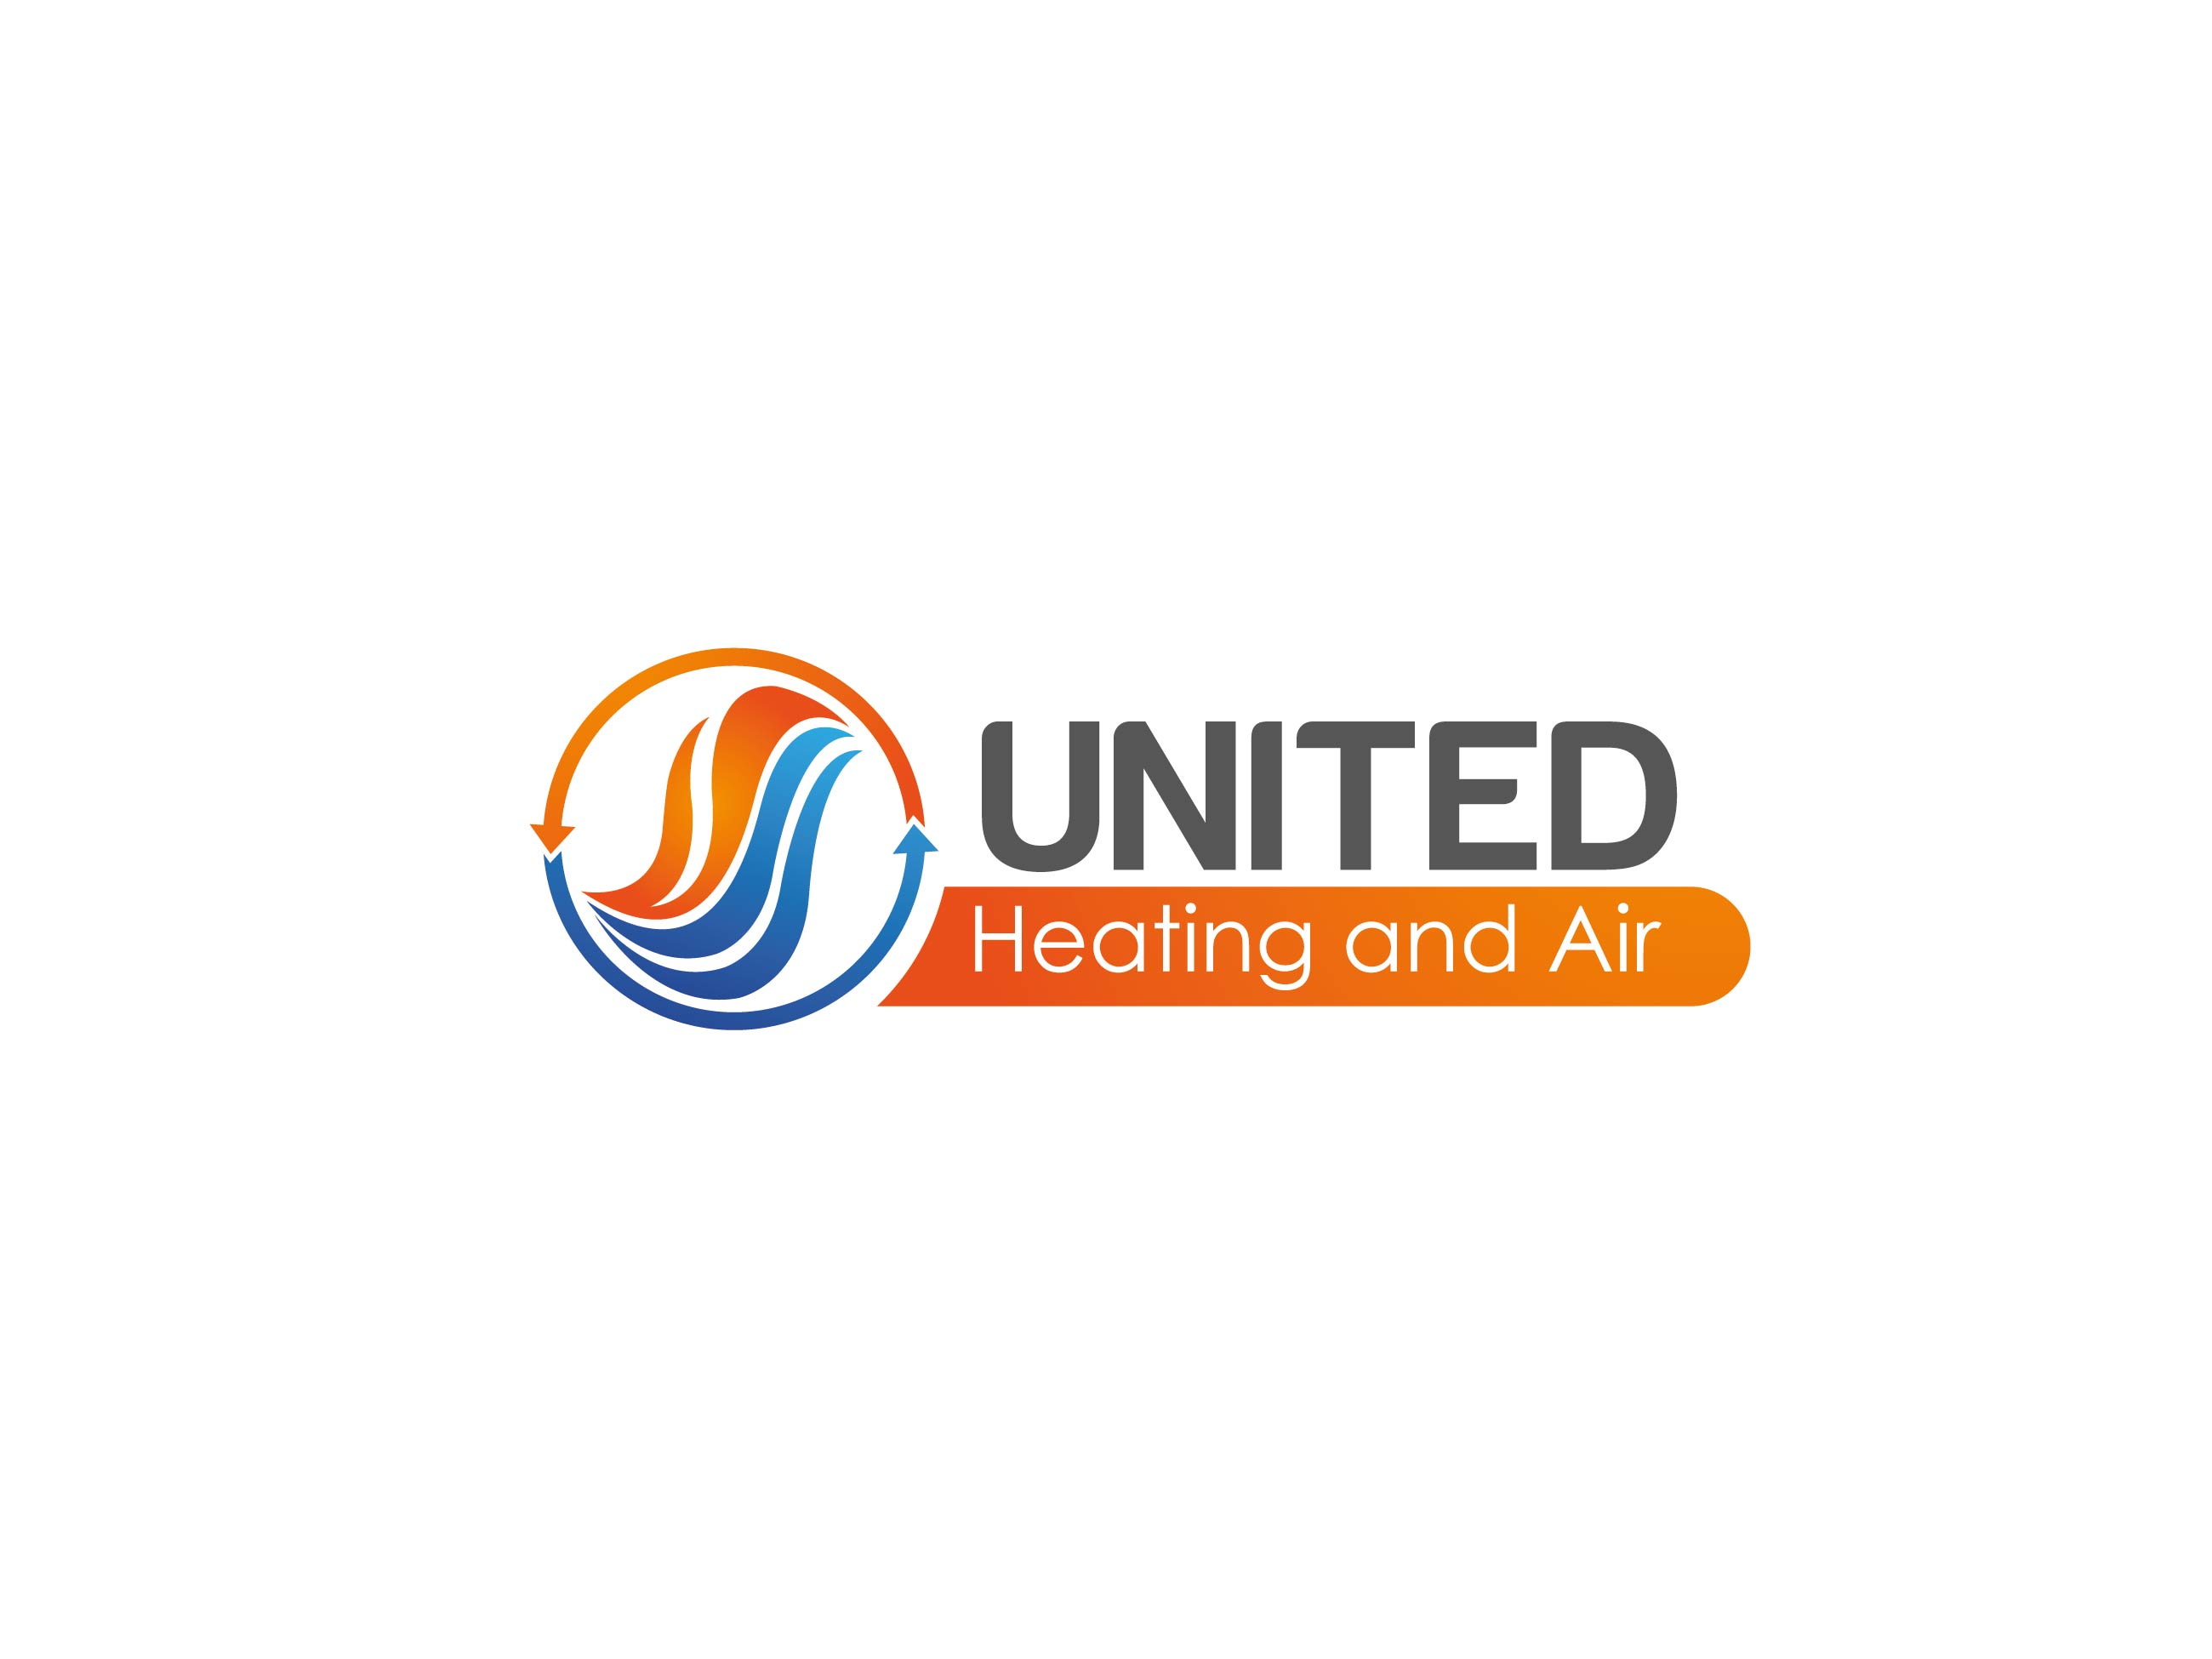 Logo Design by Adnan Taqi - Entry No. 21 in the Logo Design Contest United Heating and Air Logo Design.